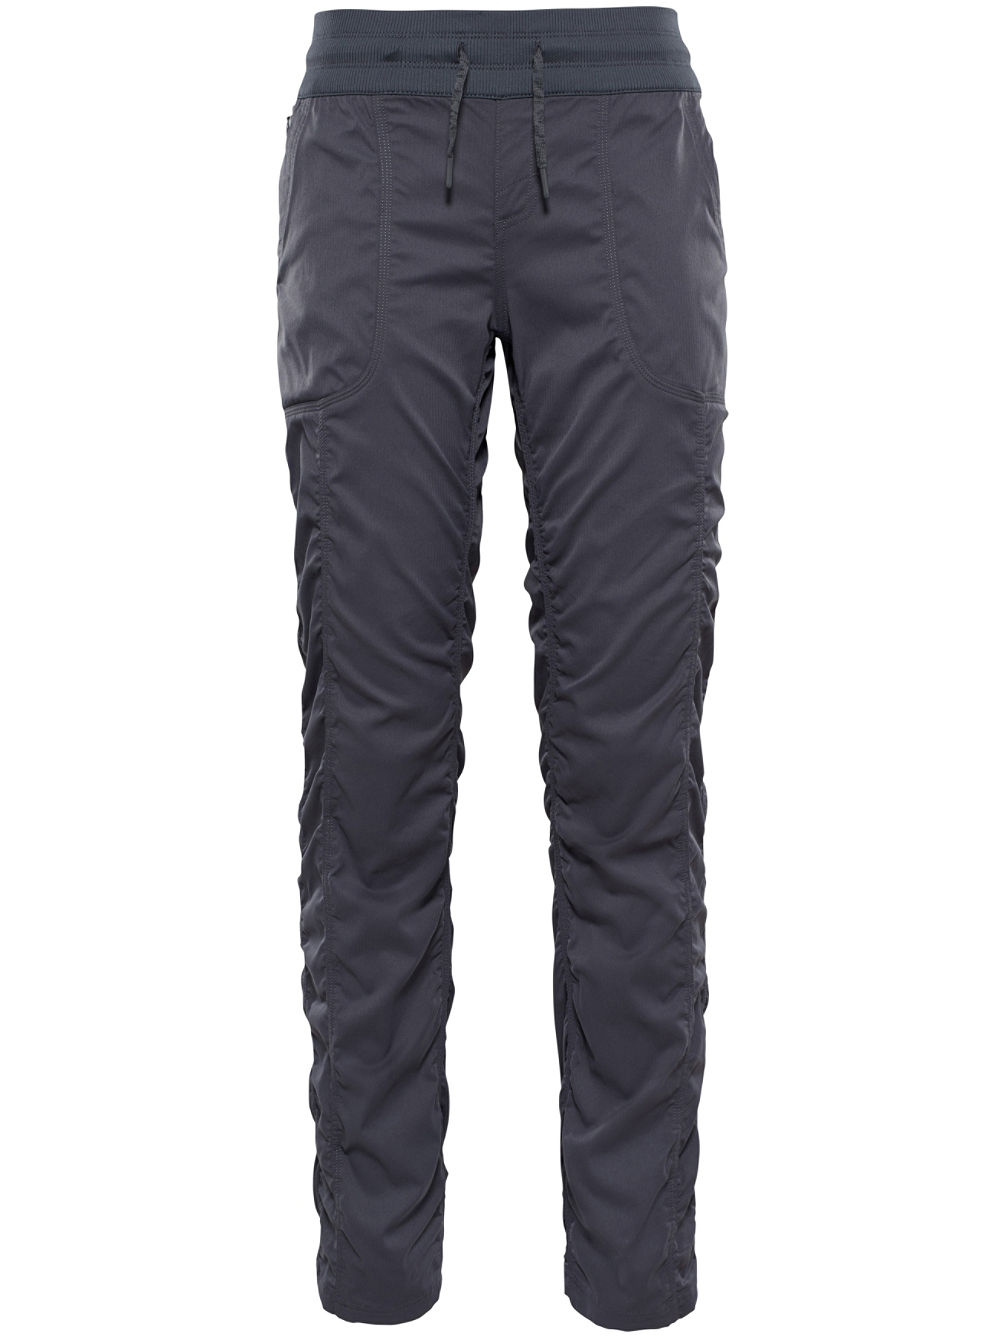 Aphrodite 2.0 Outdoor Pants